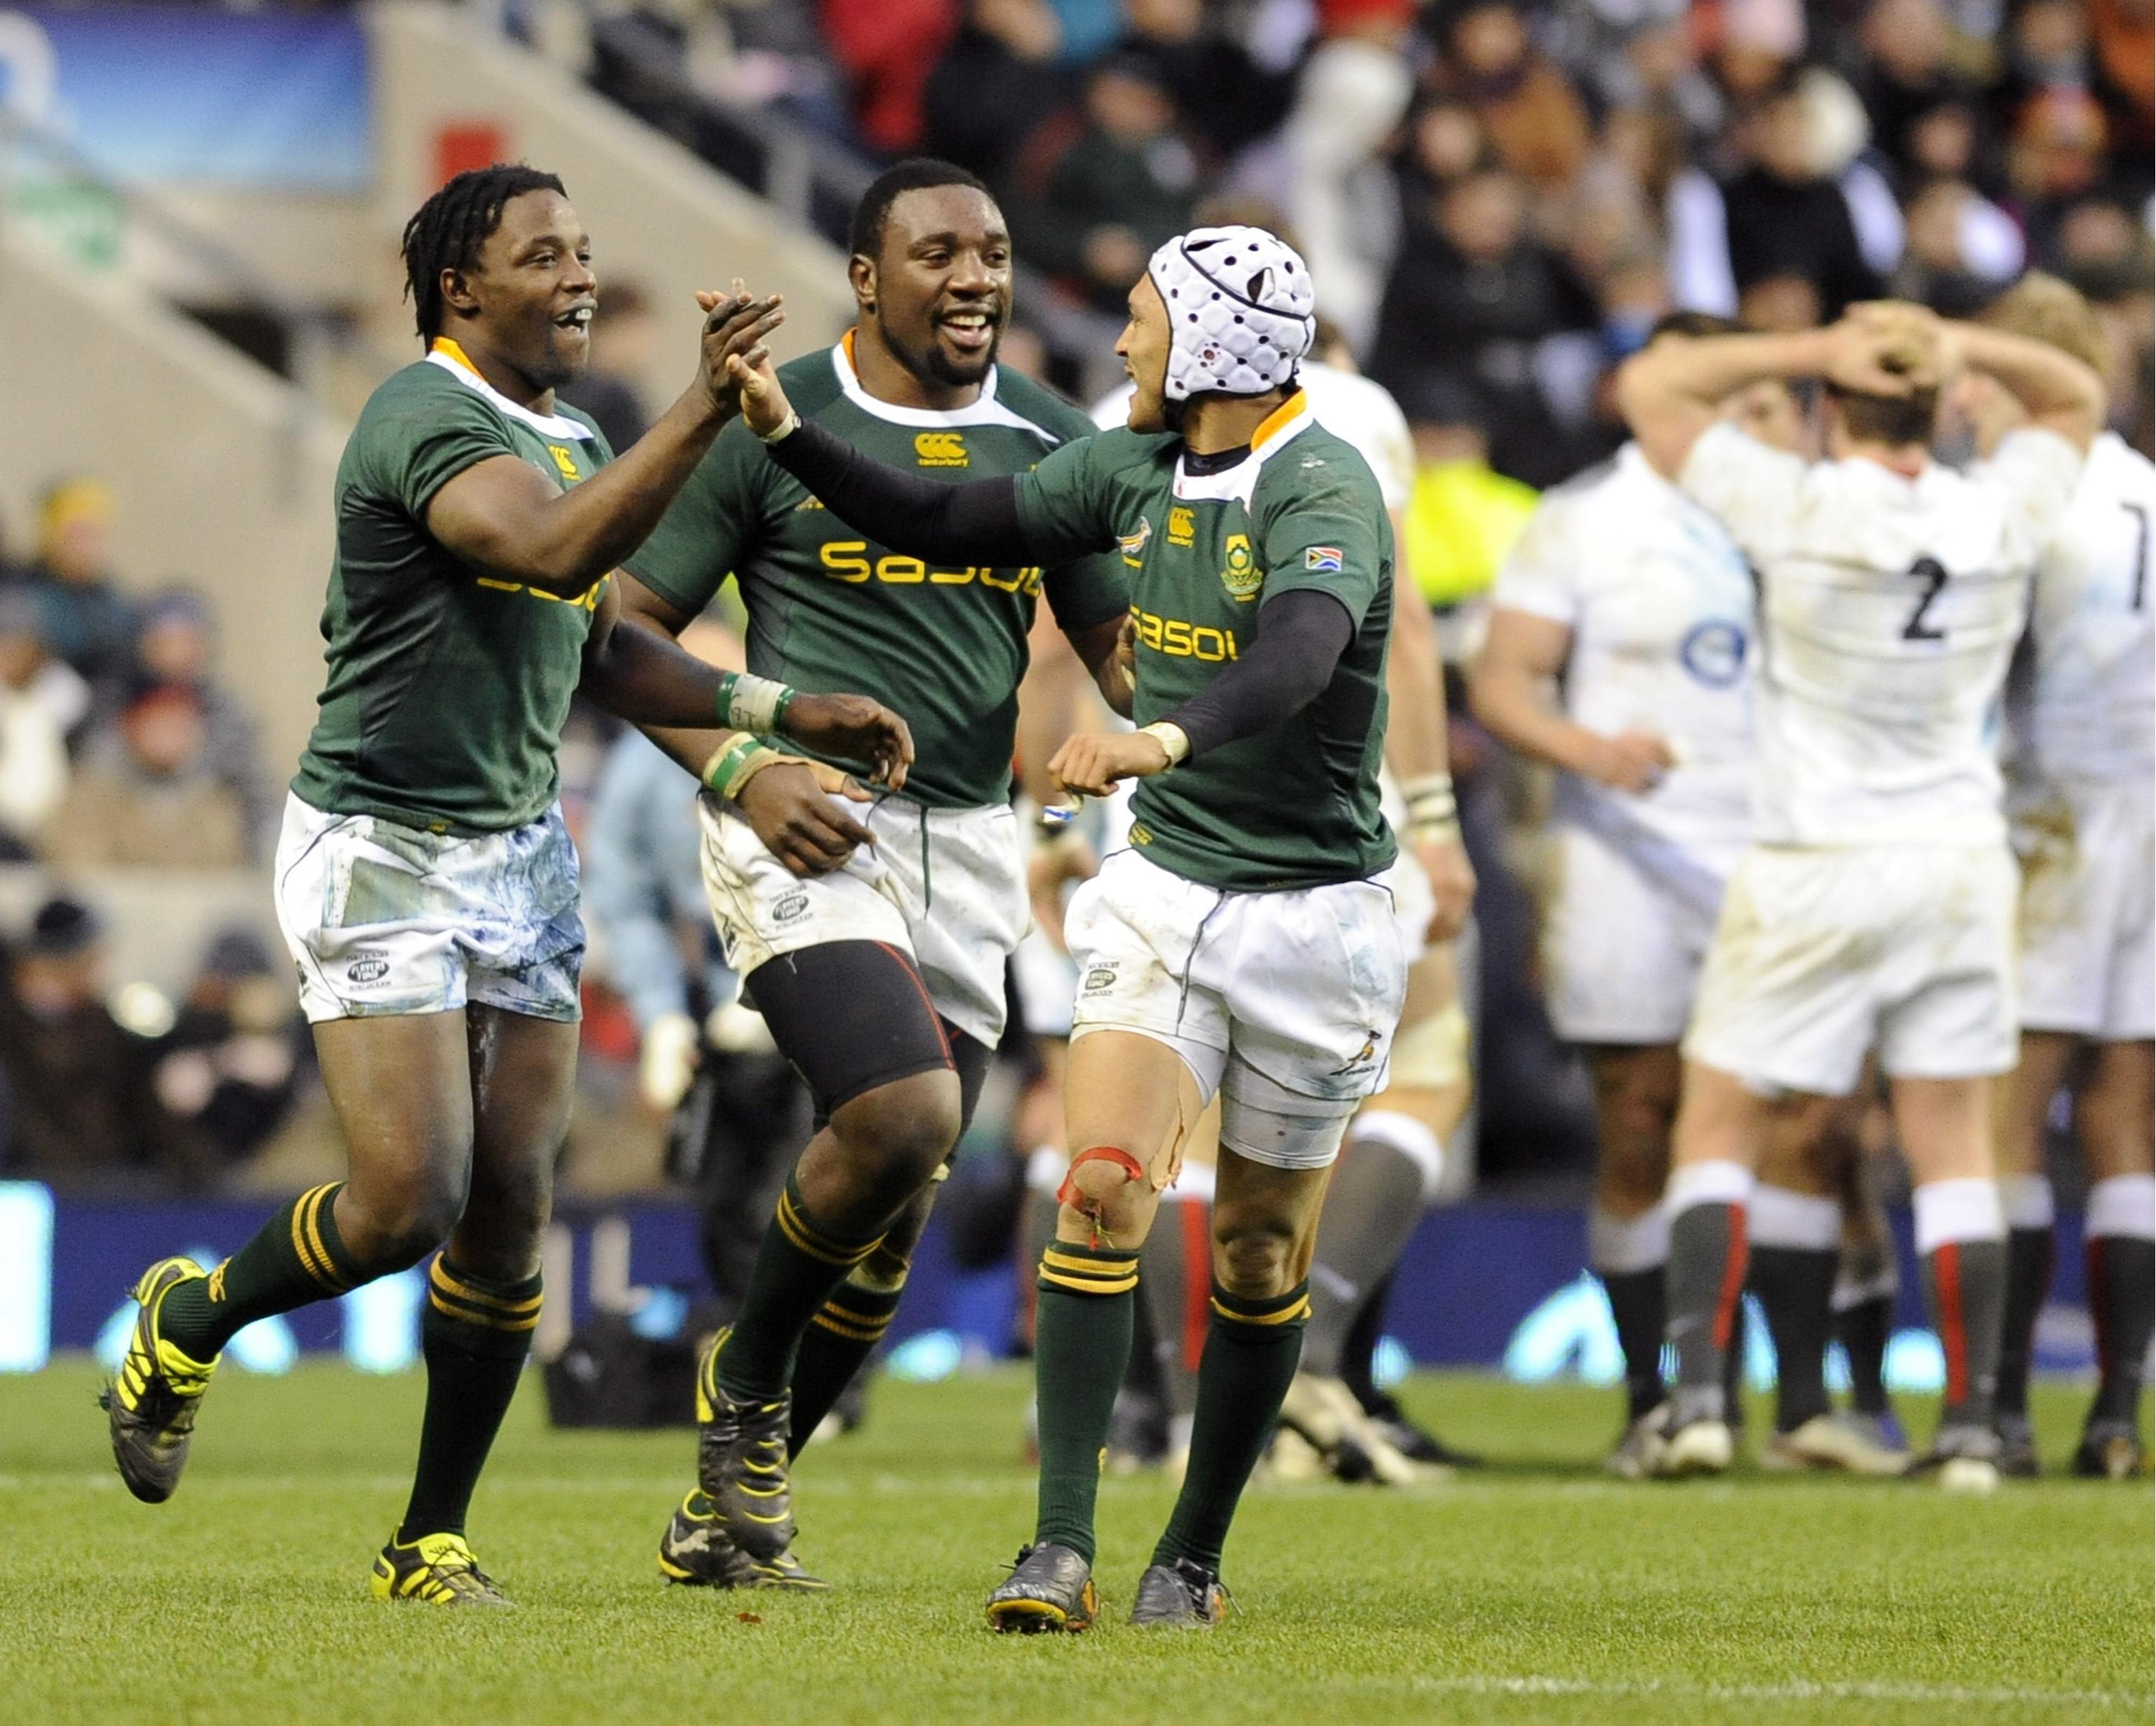 South Africa's Lwazi Mvovo (L) celebrates his try against England with Gio Aplon (R) and Tendai Mtawarira during their international rugby union match at Twickenham Stadium in London November 27, 2010.  Image supplied by Action Images / R  ussell Cheyne